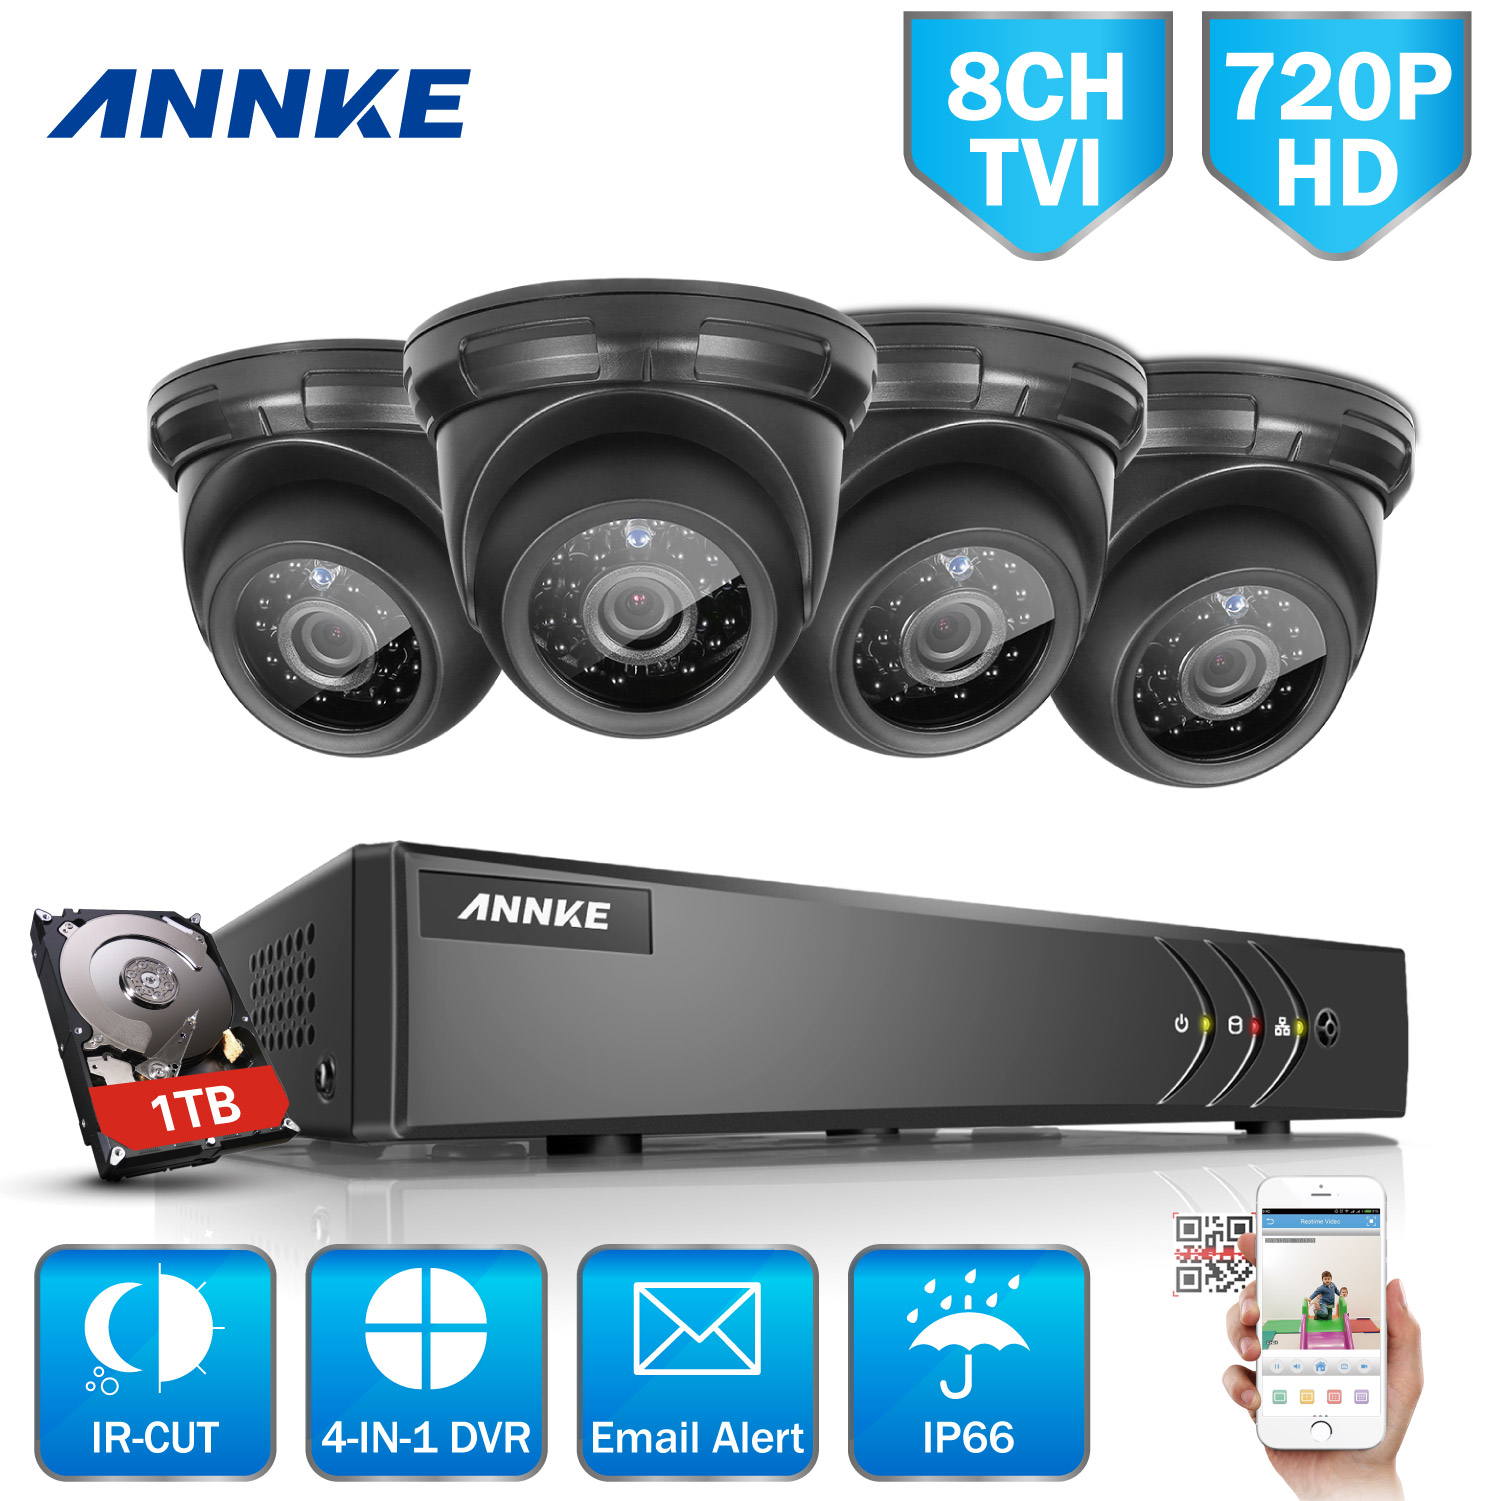 ANNKE 8CH Security 720p HD-TVI DVR Recorde System and 4Pc...